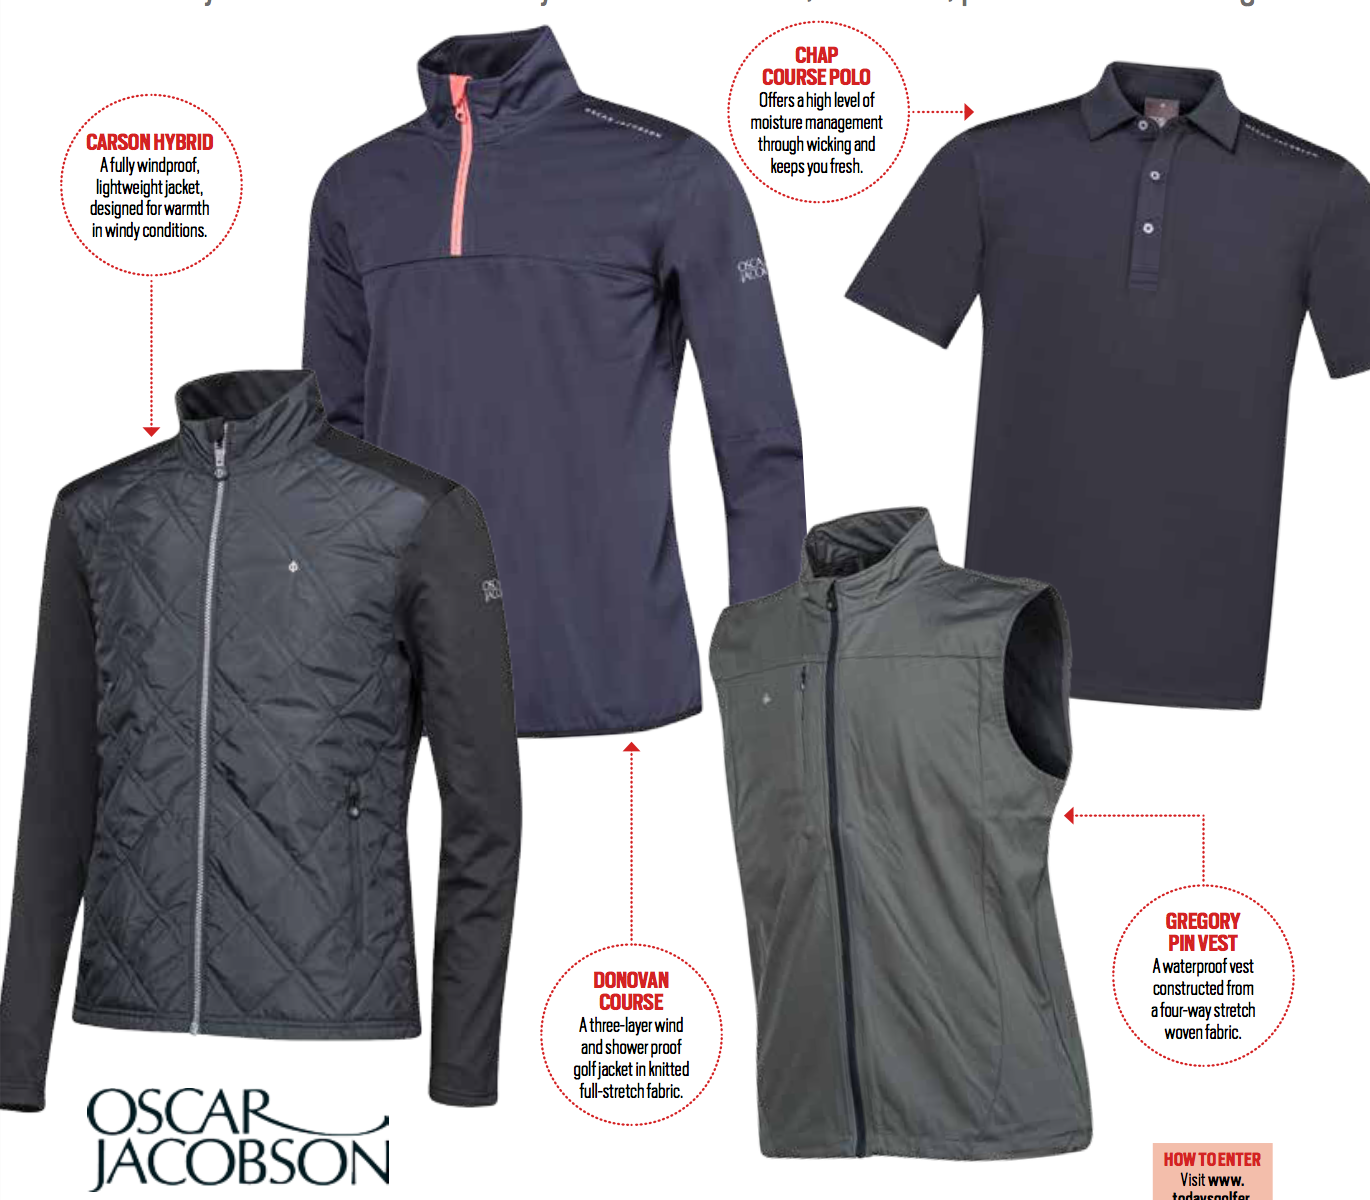 Win an Oscar Jacobson wardrobe sweepstakes